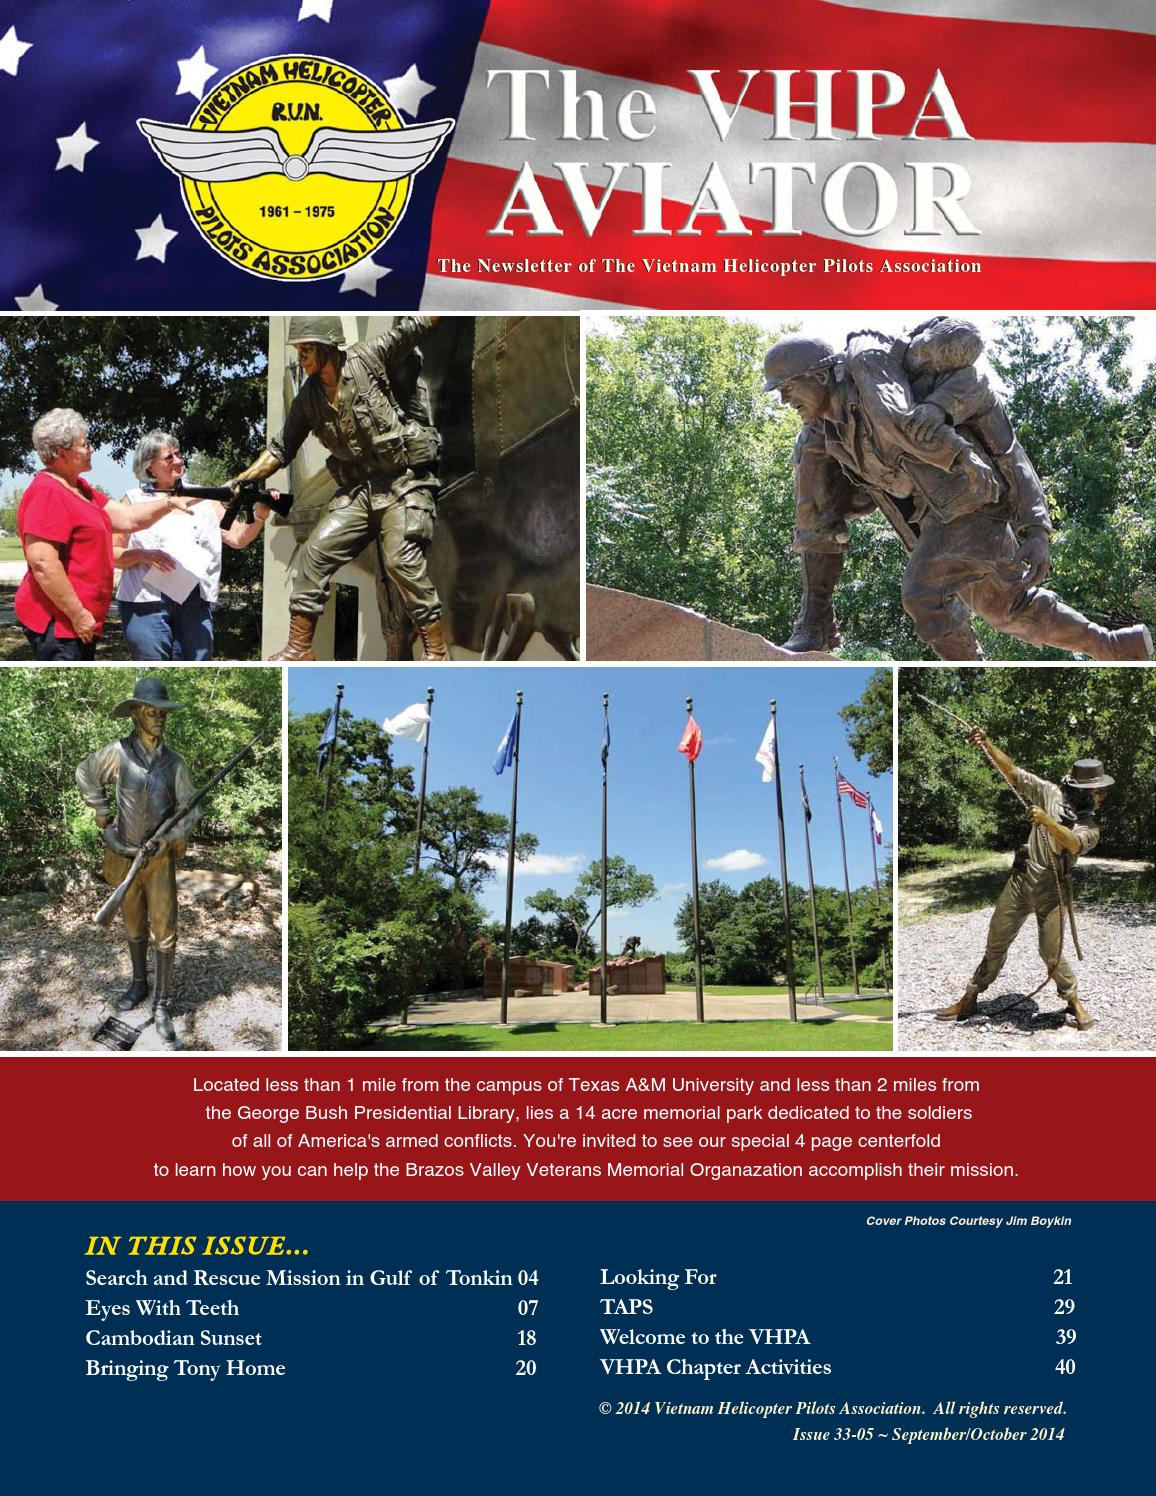 The Vhpa Aviator By Digital Publisher Issuu